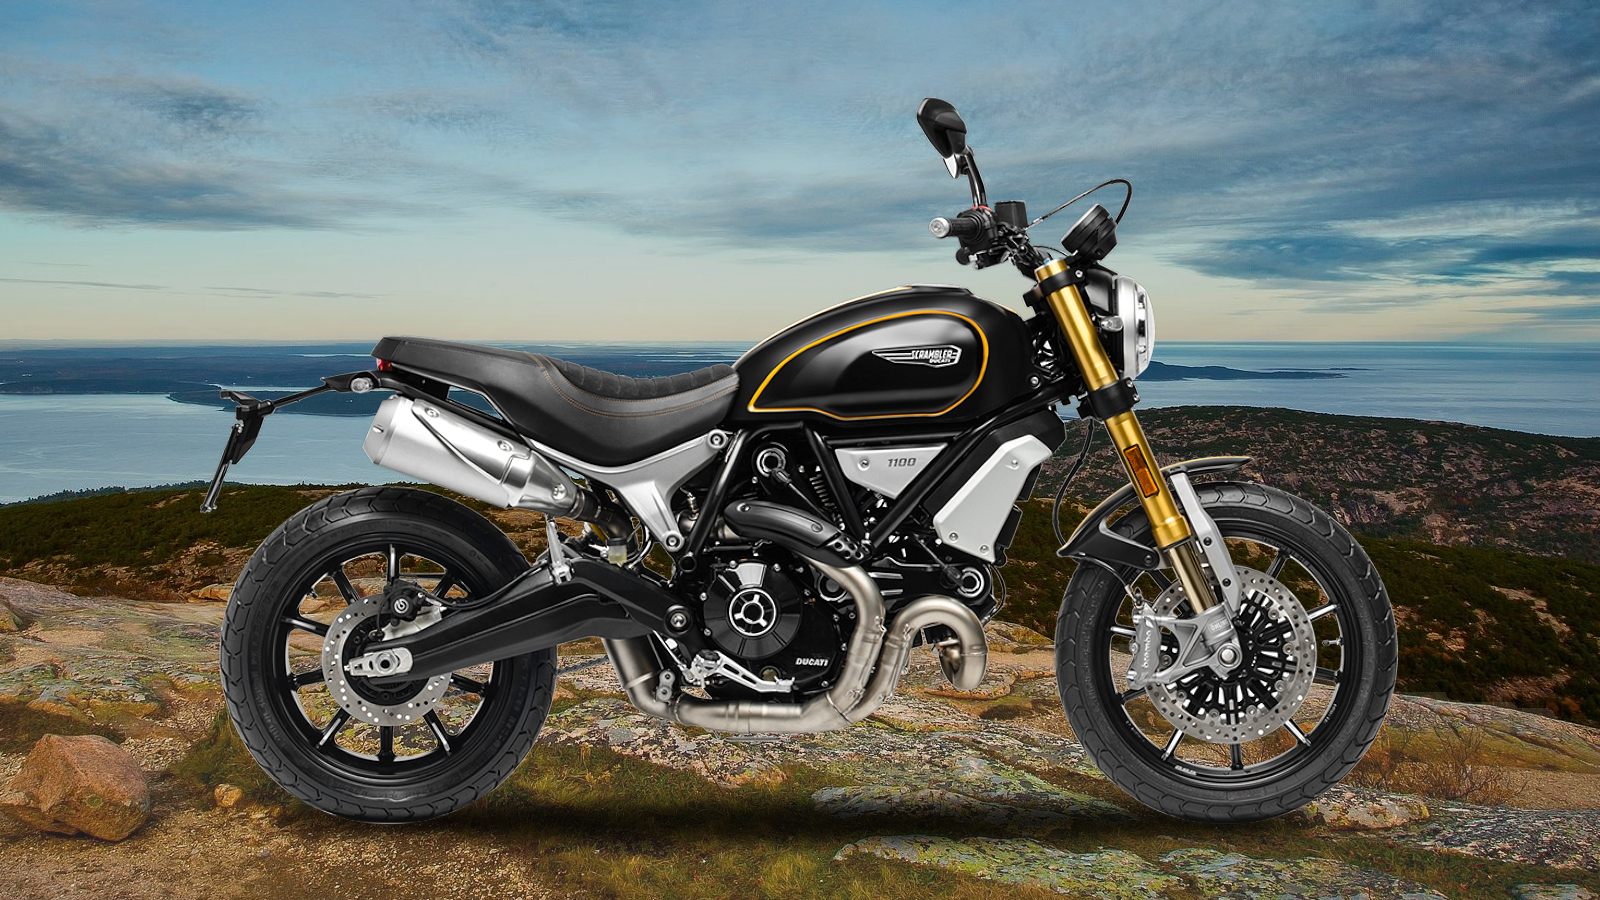 2018 ducati scrambler 1100 sport pictures, photos, wallpapers. | top